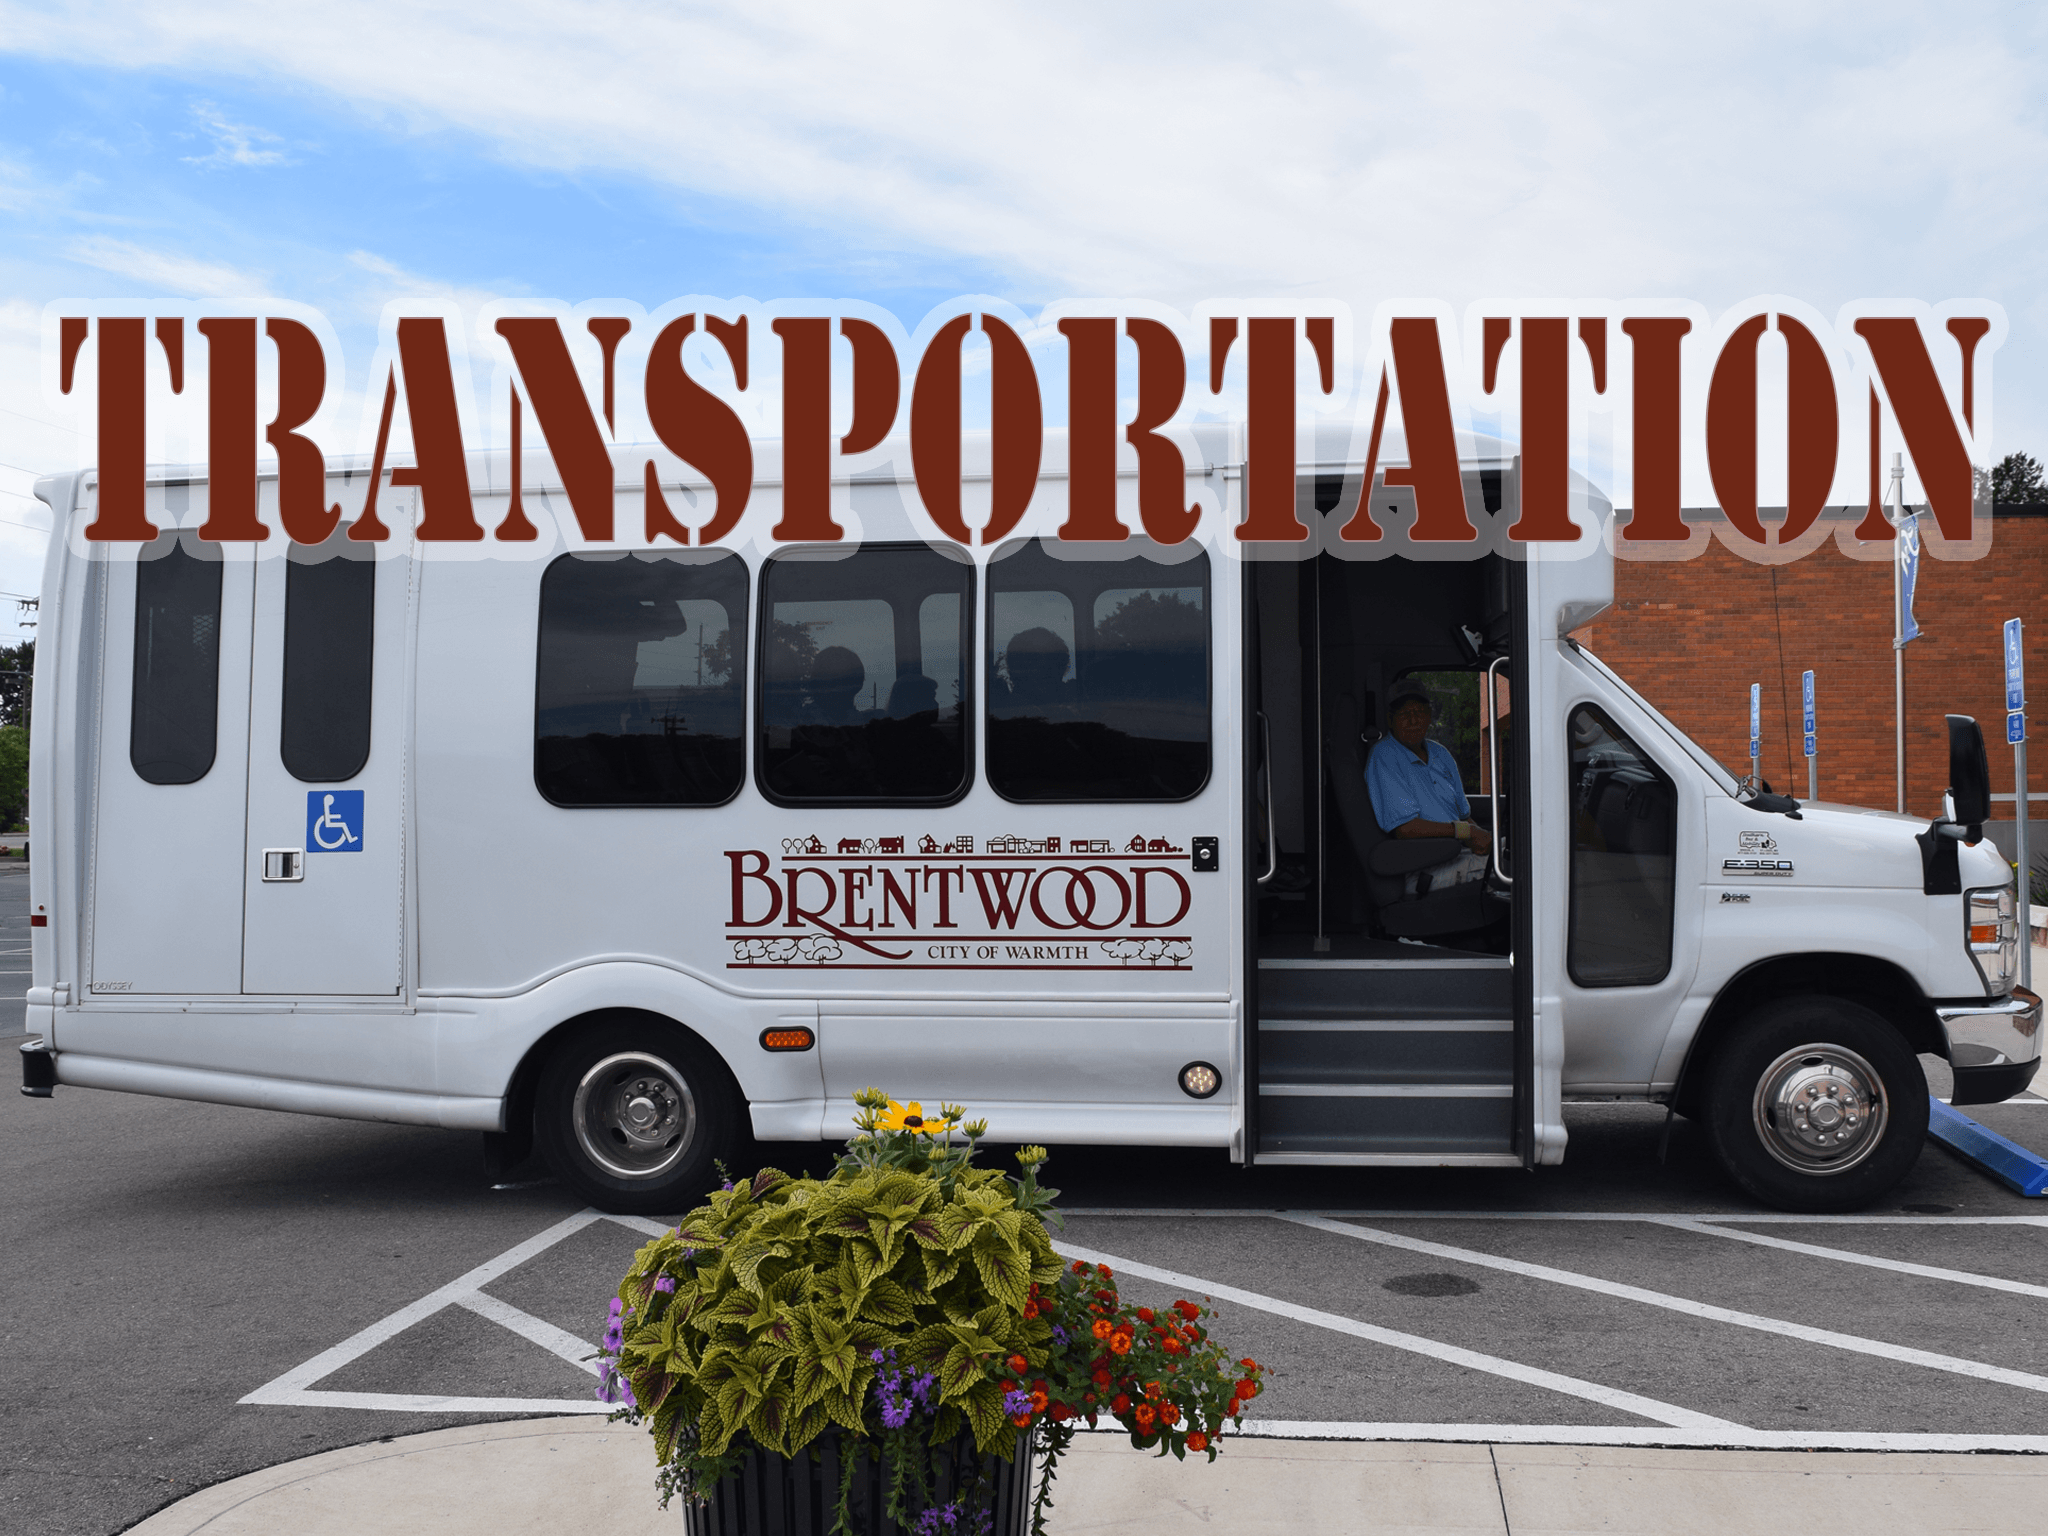 TransportationGraphic